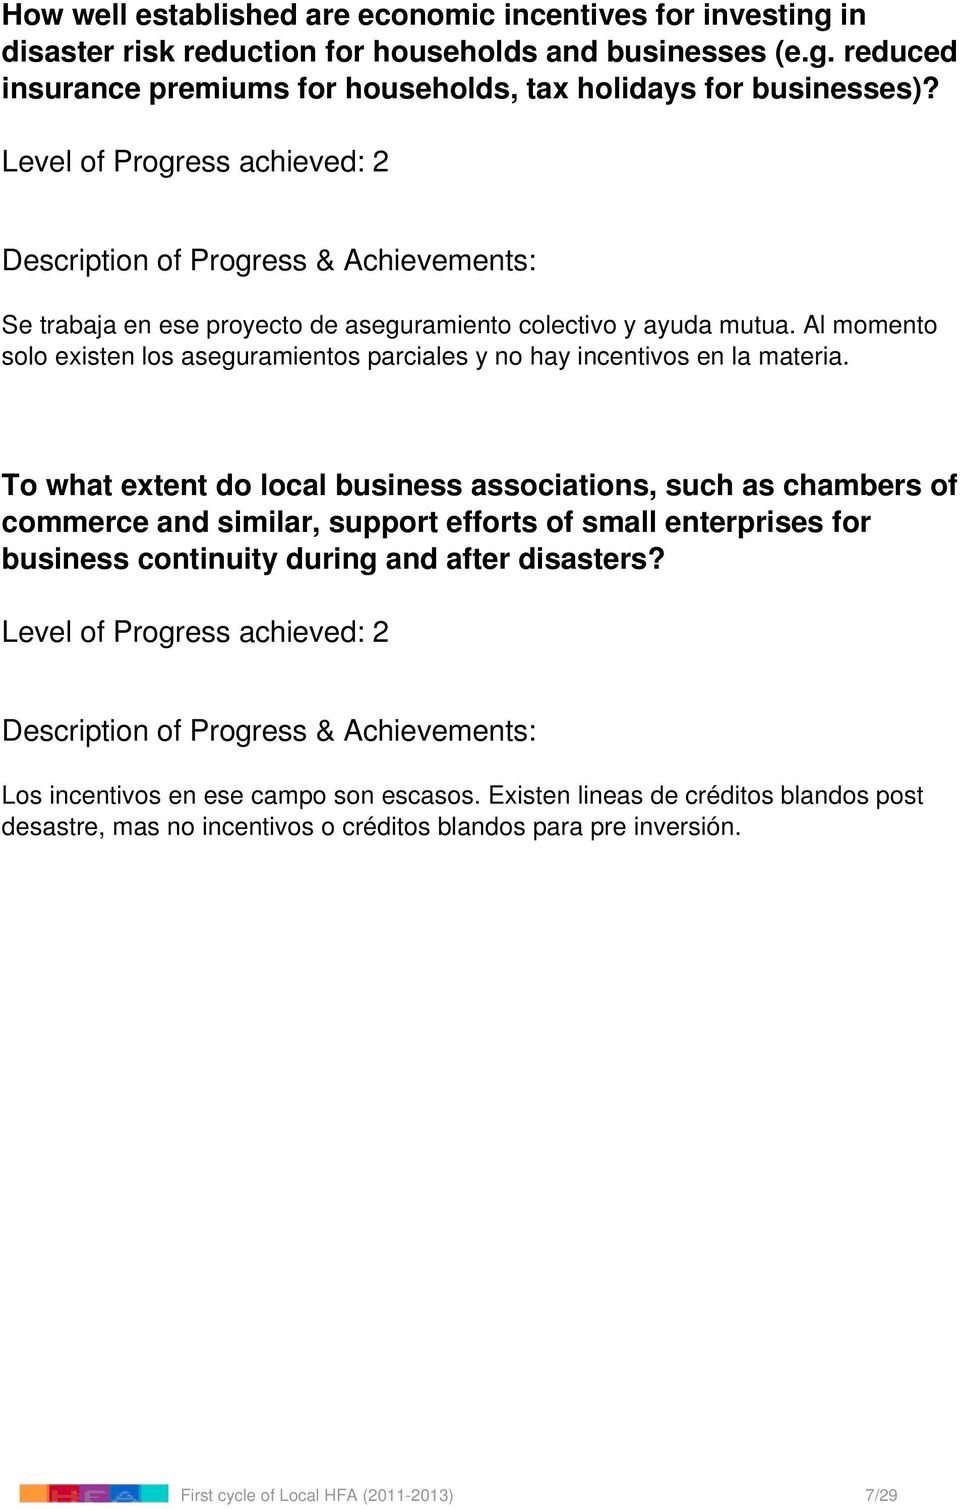 To what extent do local business associations, such as chambers of commerce and similar, support efforts of small enterprises for business continuity during and after disasters?